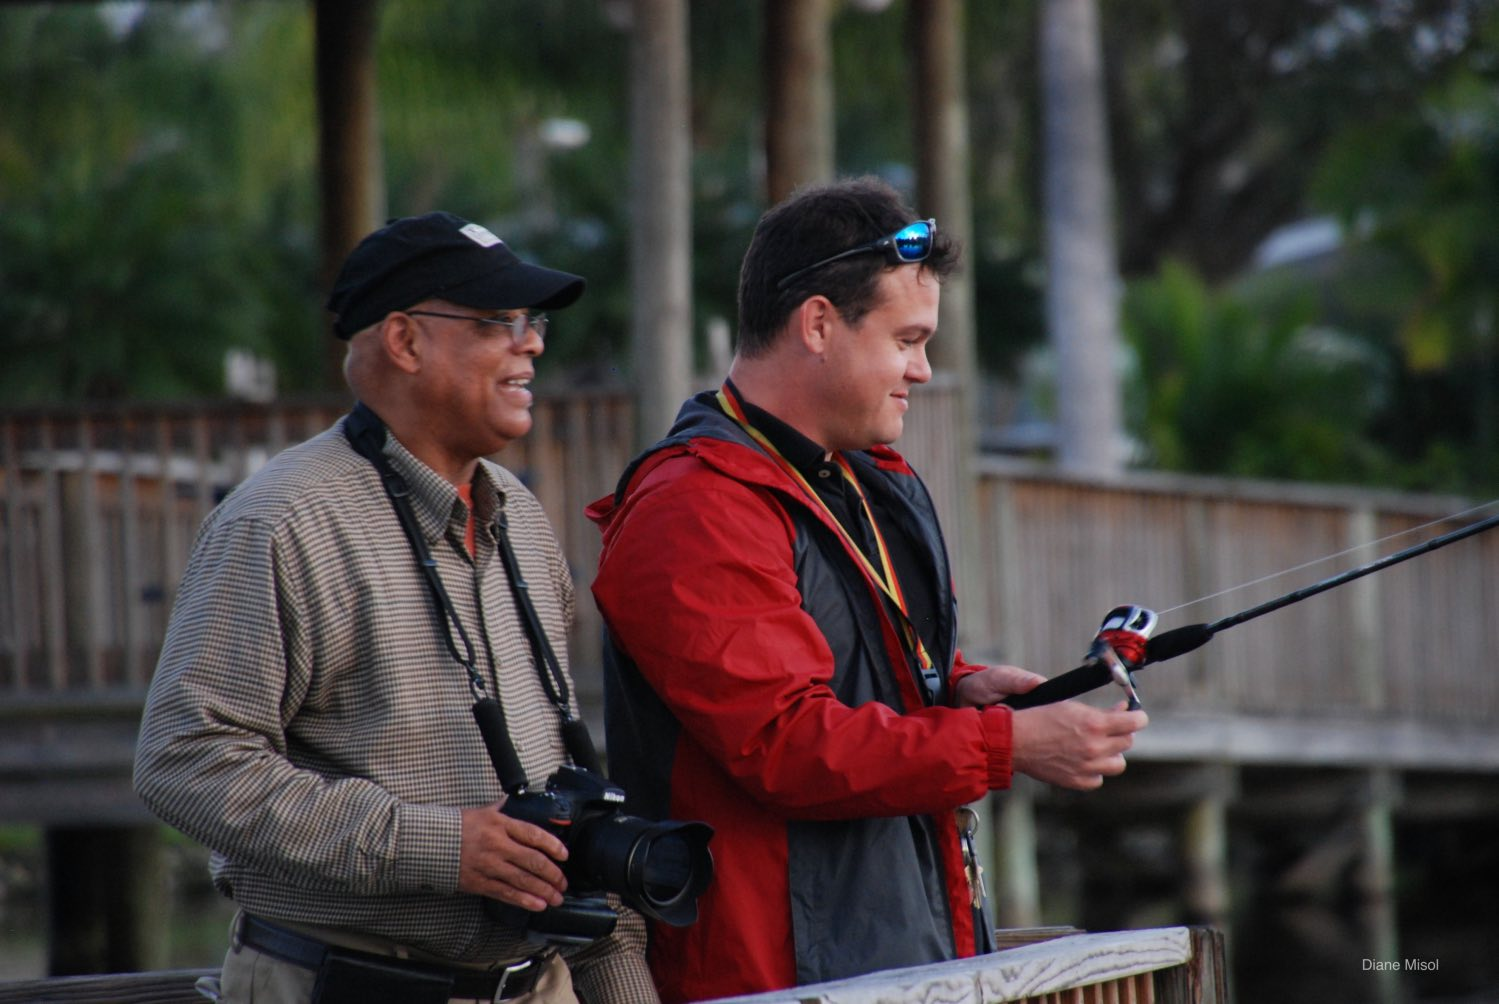 A Fisherman and a Photographer share the views of Lake Okeechobee